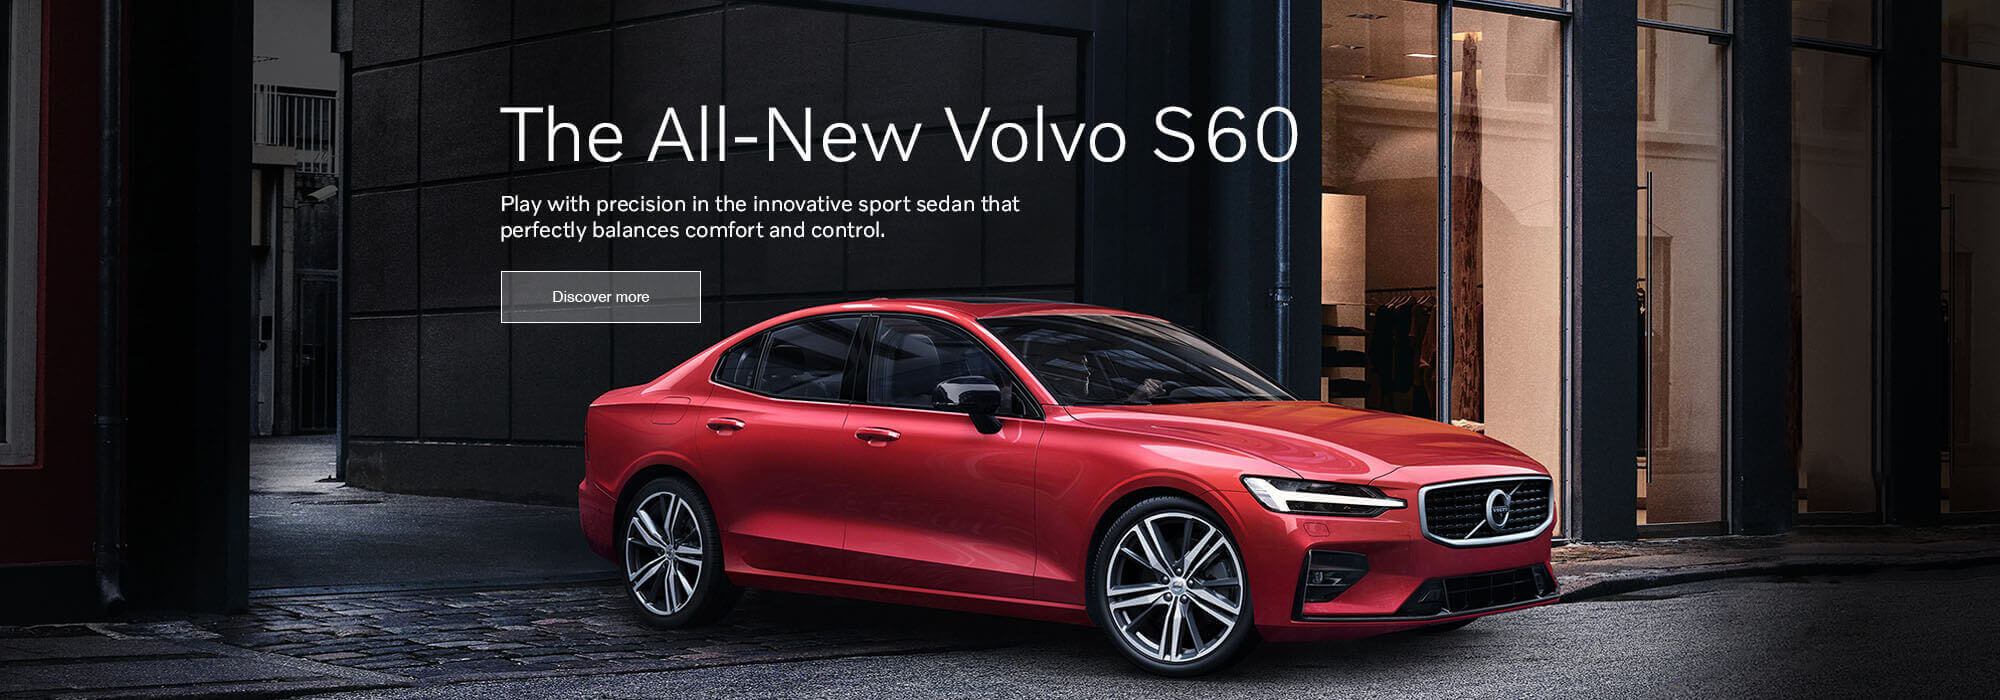 Play with precision in the innovative sport sedan